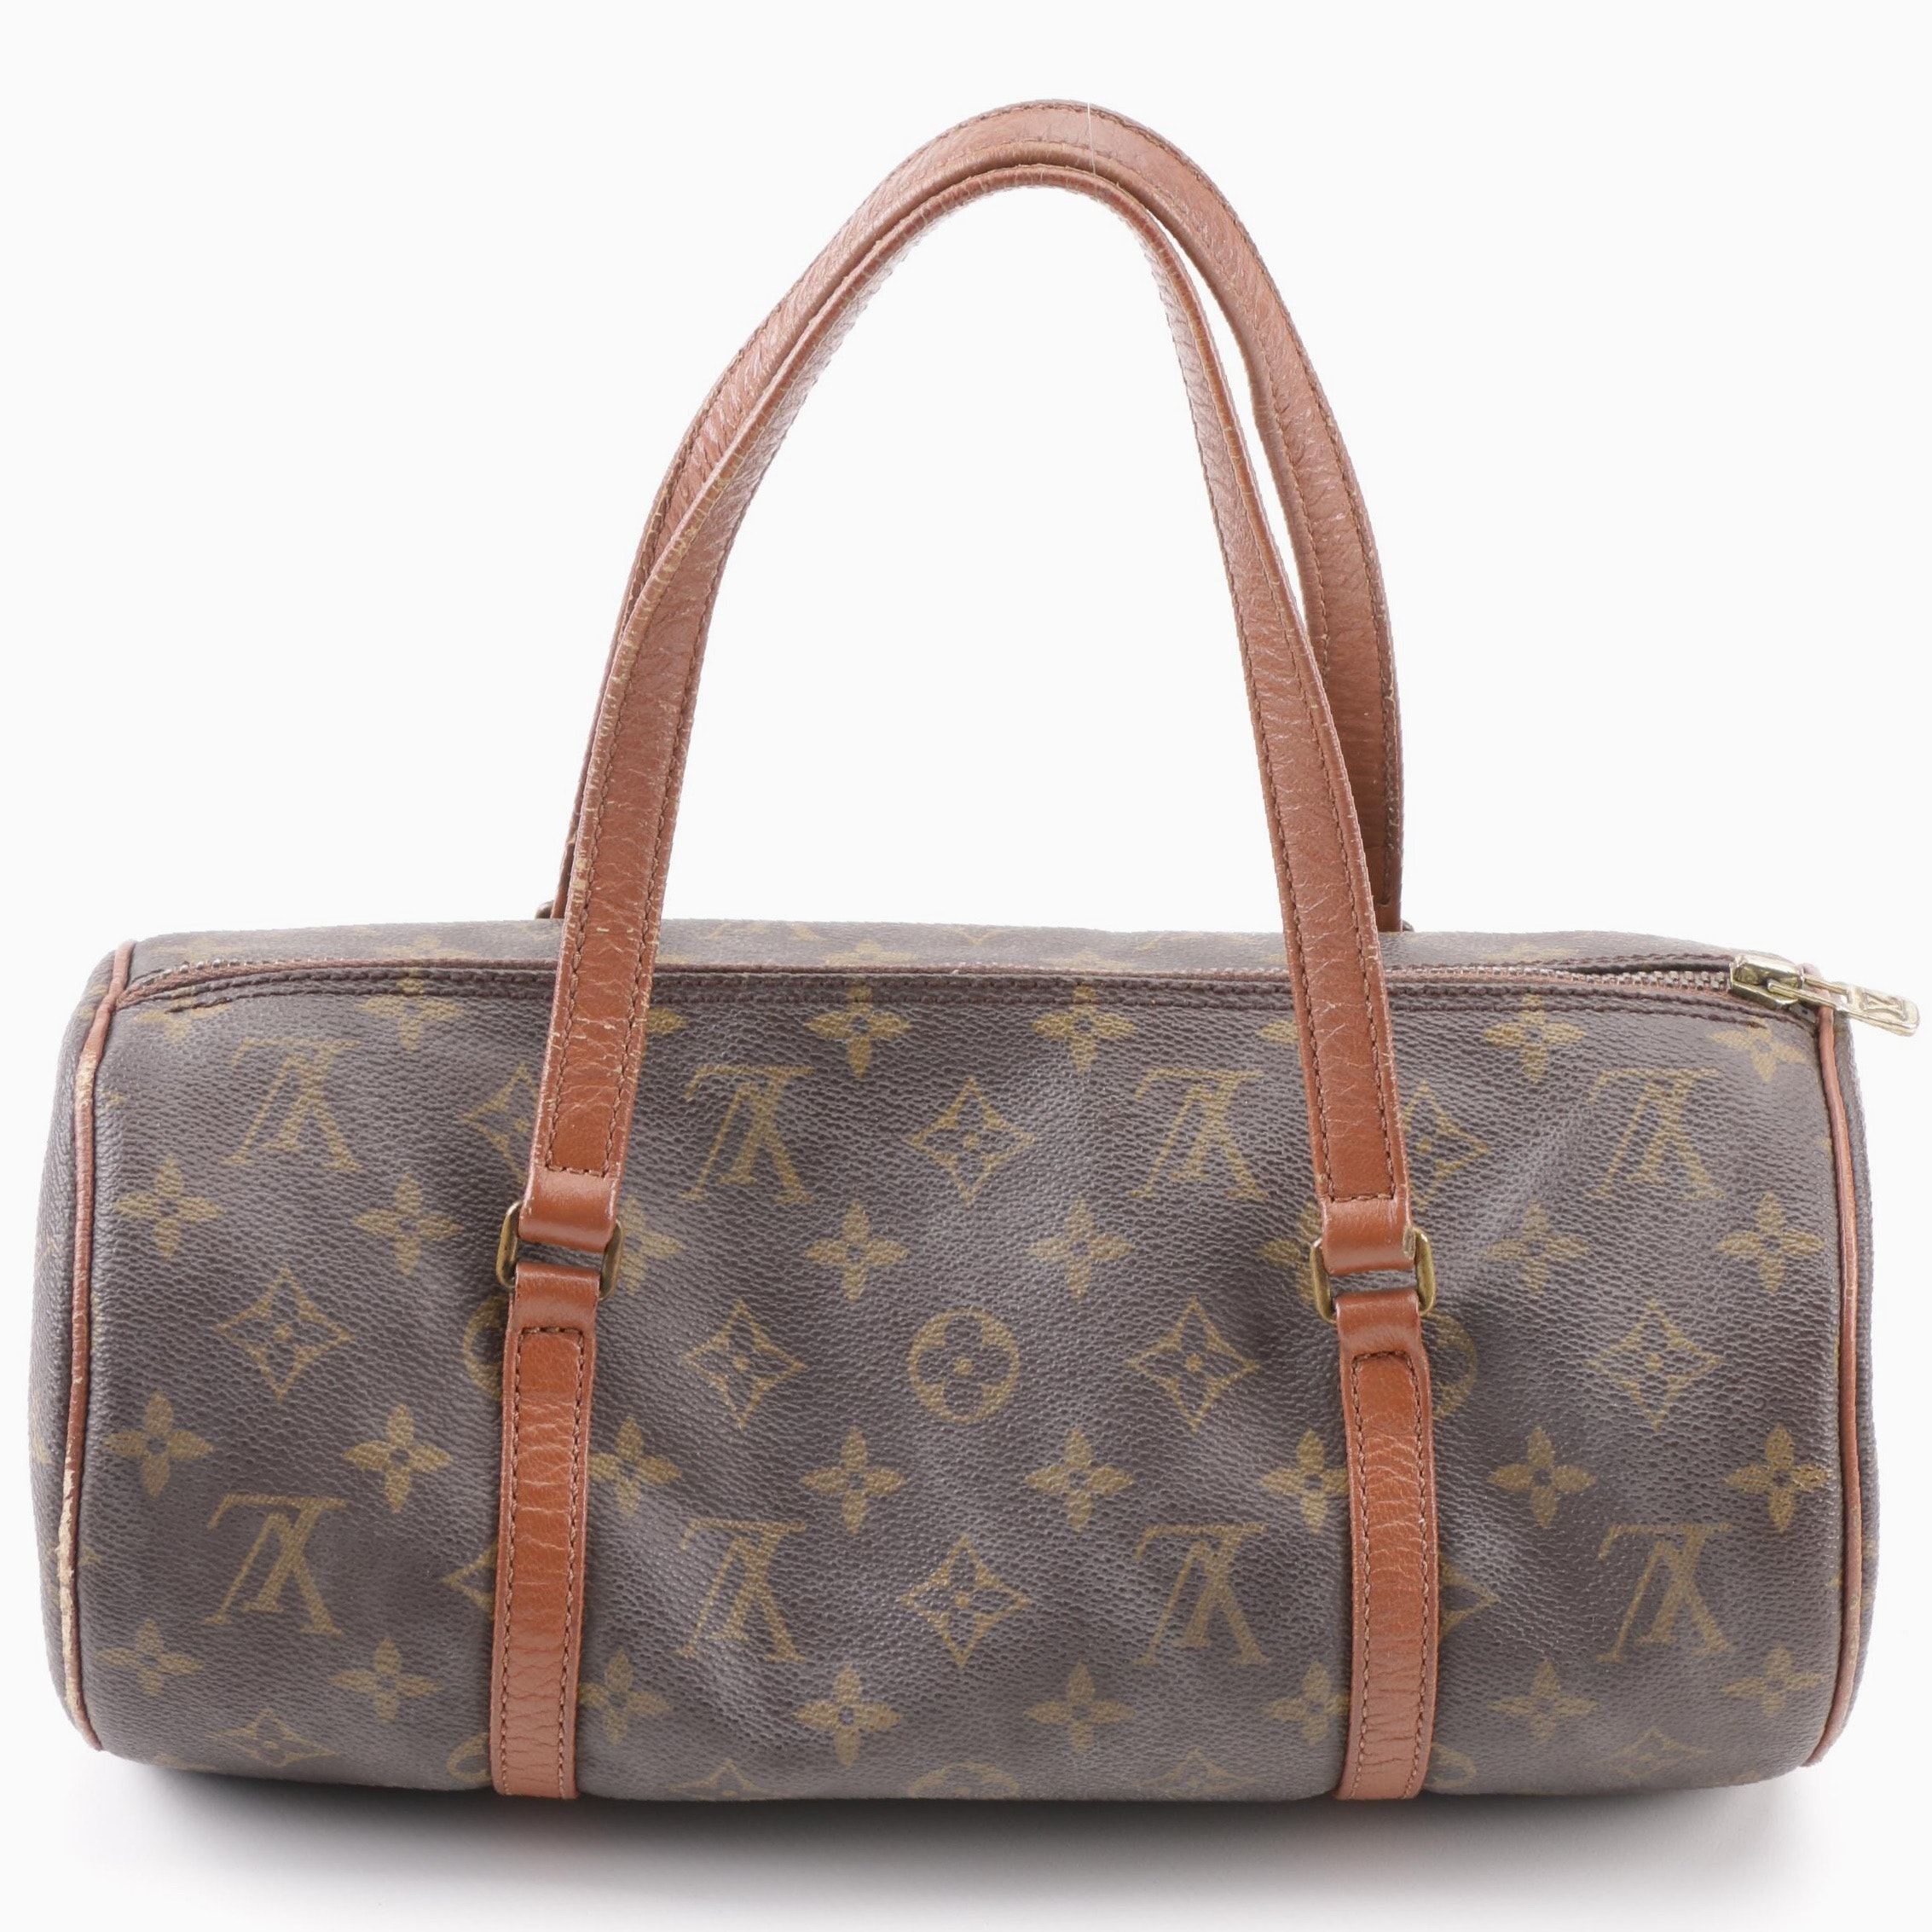 1985 Vintage Louis Vuitton Paris Monogram Canvas Papillion 30 Barrel Bag